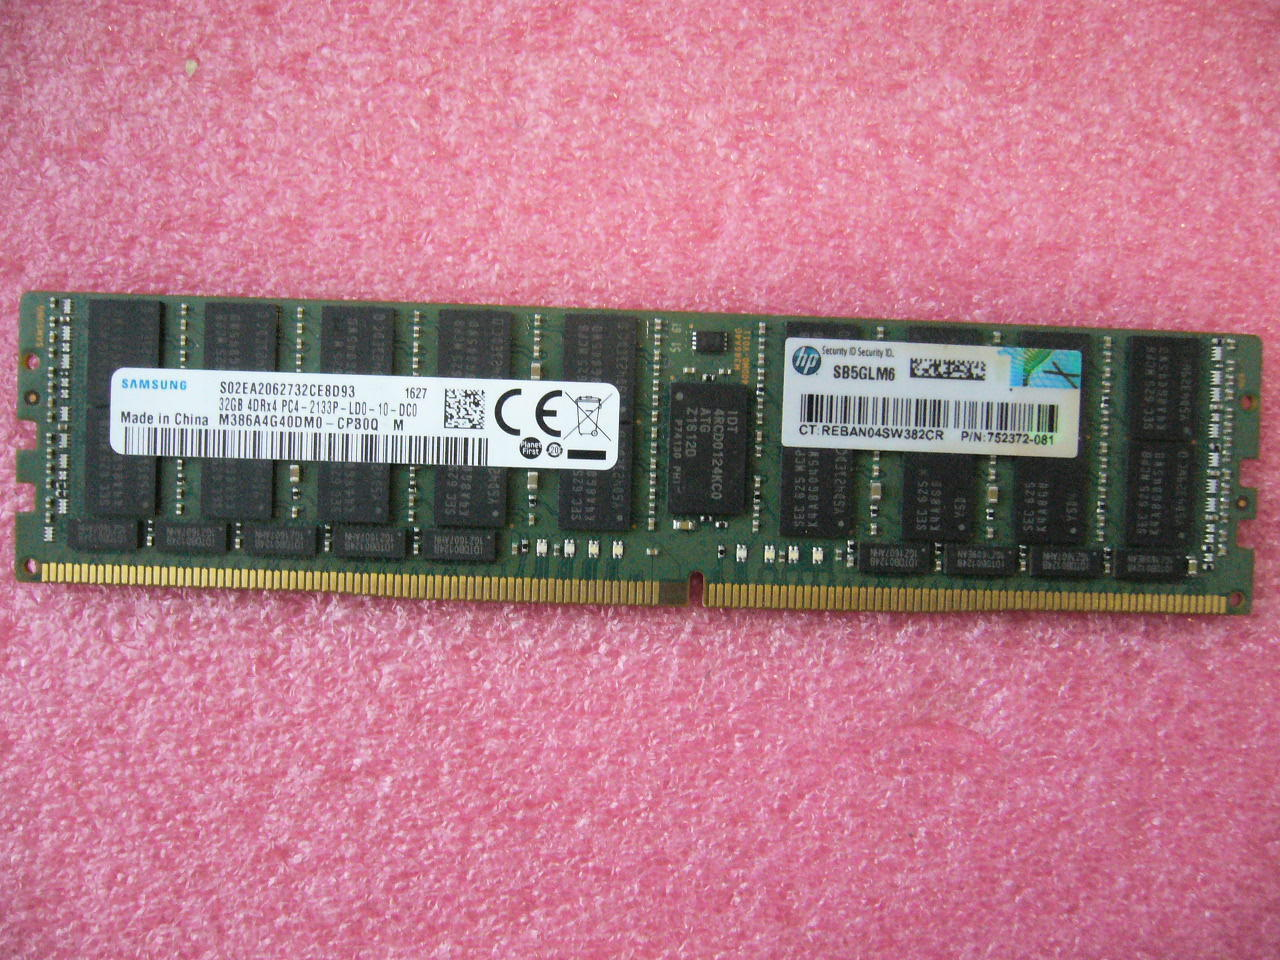 QTY 1x 32GB DDR4 4DRx4 PC4-2133P-LD0 ECC Registered memory Samsung HP 752372-081